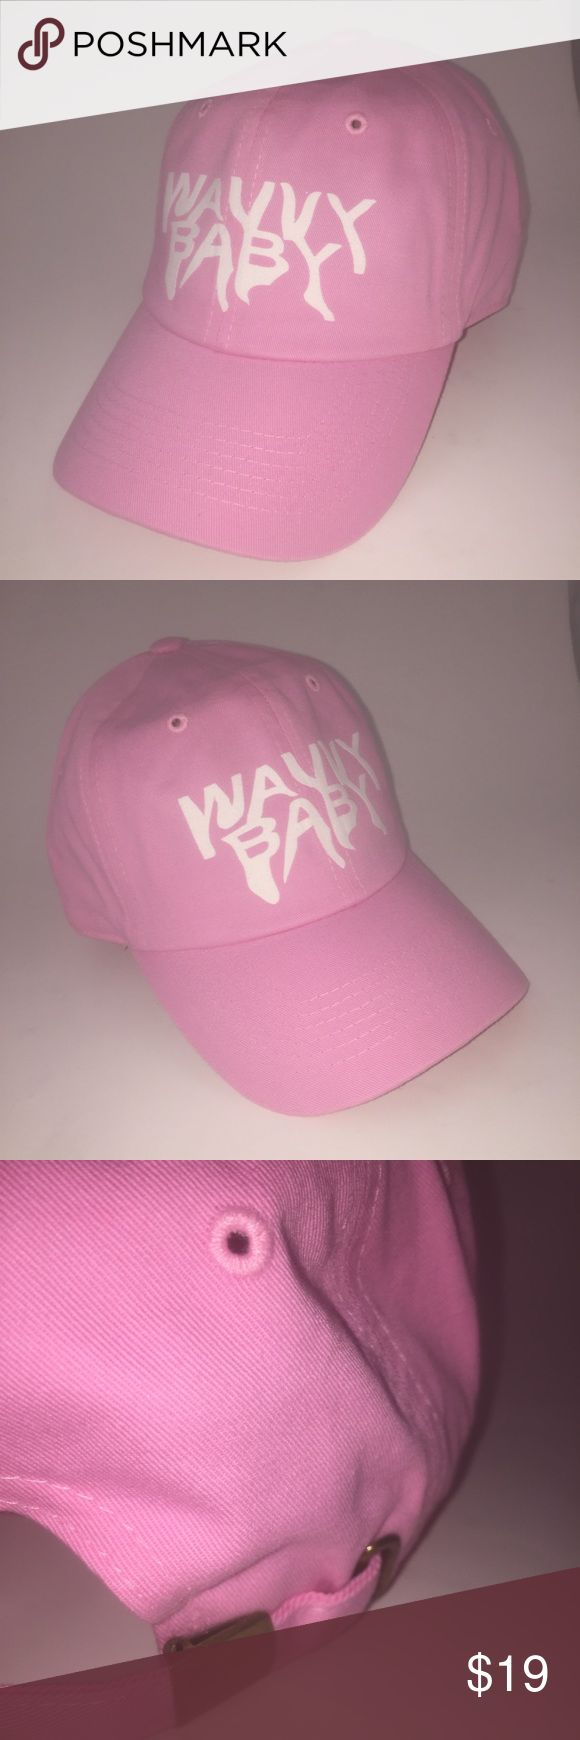 Wavvy Baby Dad Hat NWT This Pastel Pink Strapback Dad Hat is adjustable with tuck pocket NEW___Ignore tags: huf, weed, marijuana, kush, obey, stussy, dope, trill, Blvck, boy london, paris, joggers,  trap style, rave, rare, huf, blvck fashion, trill, pipe, dabber, glass, sad, me, goth, goth girl, woes, the six, 6ix, ovo, blvck, Brooklyn, London, pikachu, 6 God, glitter, naps, mobb, asap, long style, Ovo, snapback, pastel, Brandy, American, urban, anti social club Accessories Hats